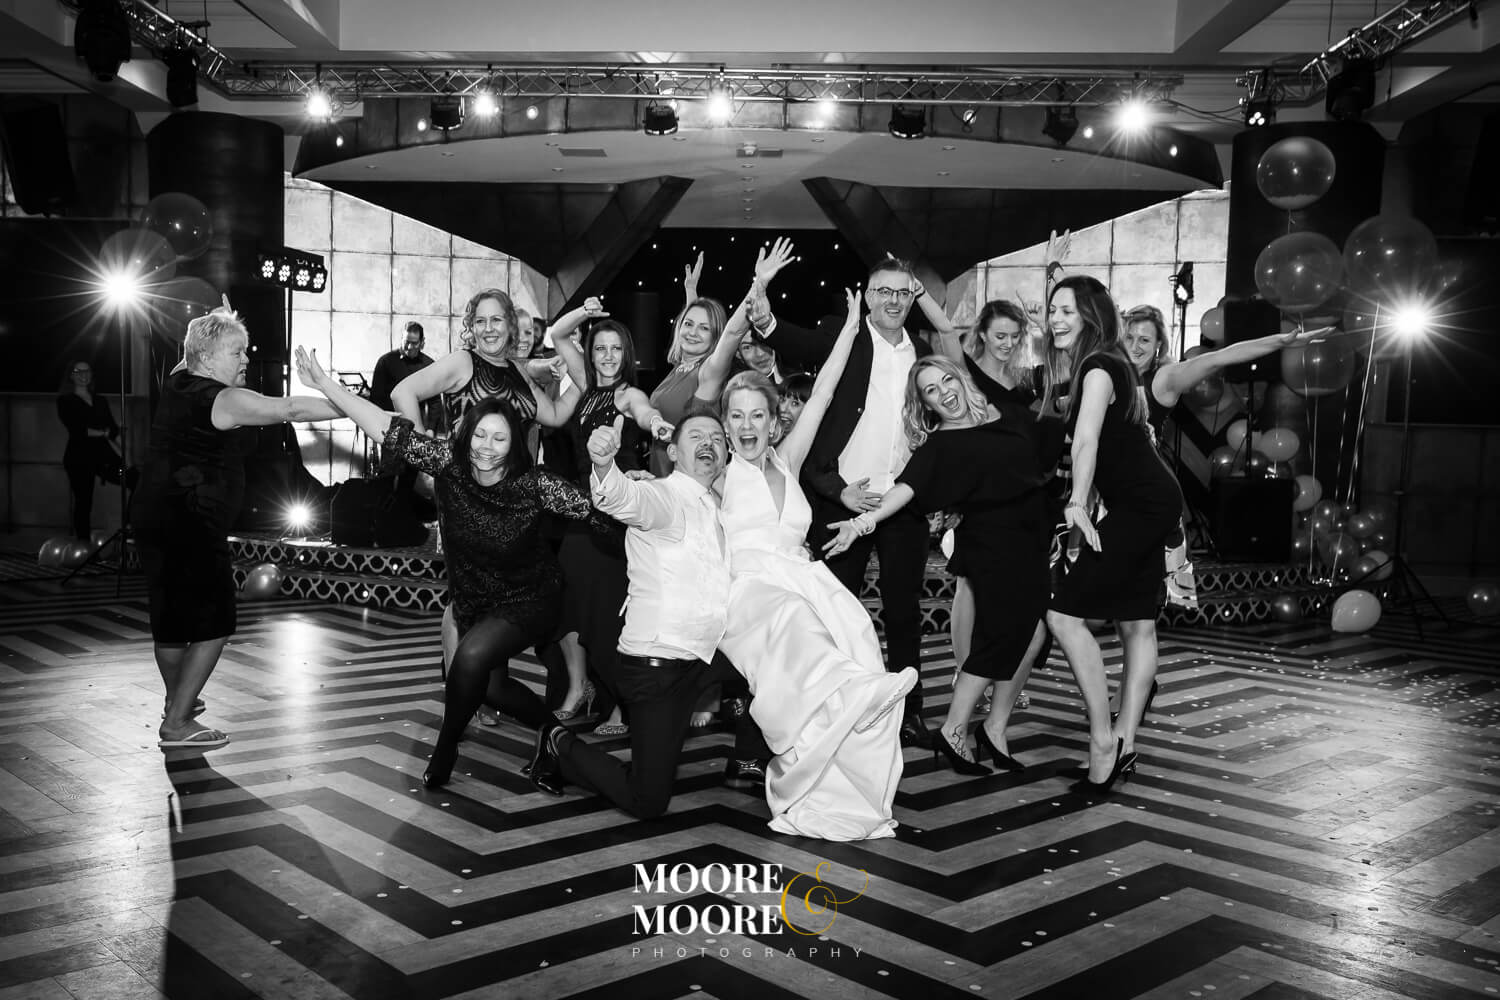 First Dance Flash mob wedding photography by Helen Moore of Moore & Moore Photography